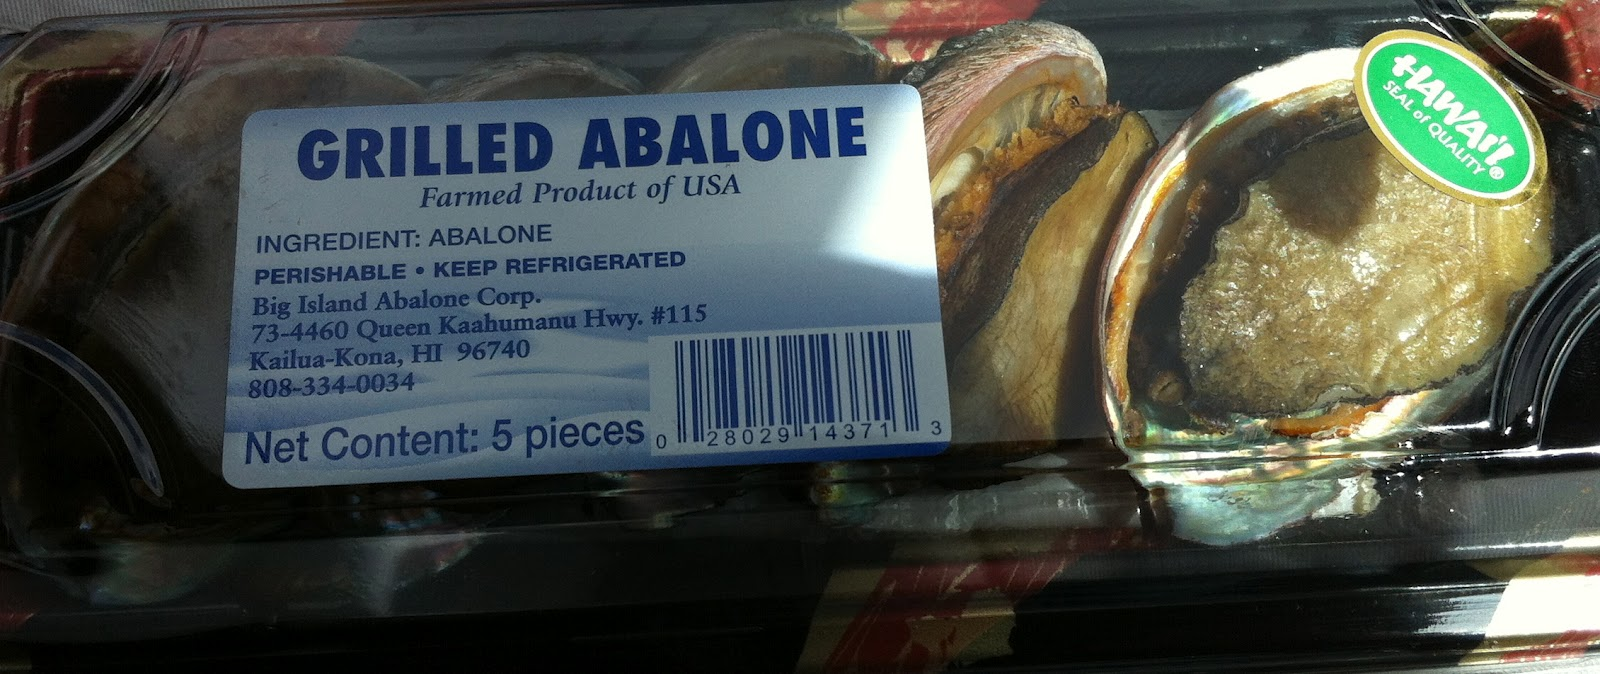 taste of hawaii big island abalone corp abalone from costco farm raised abalone bought at costco in honolulu